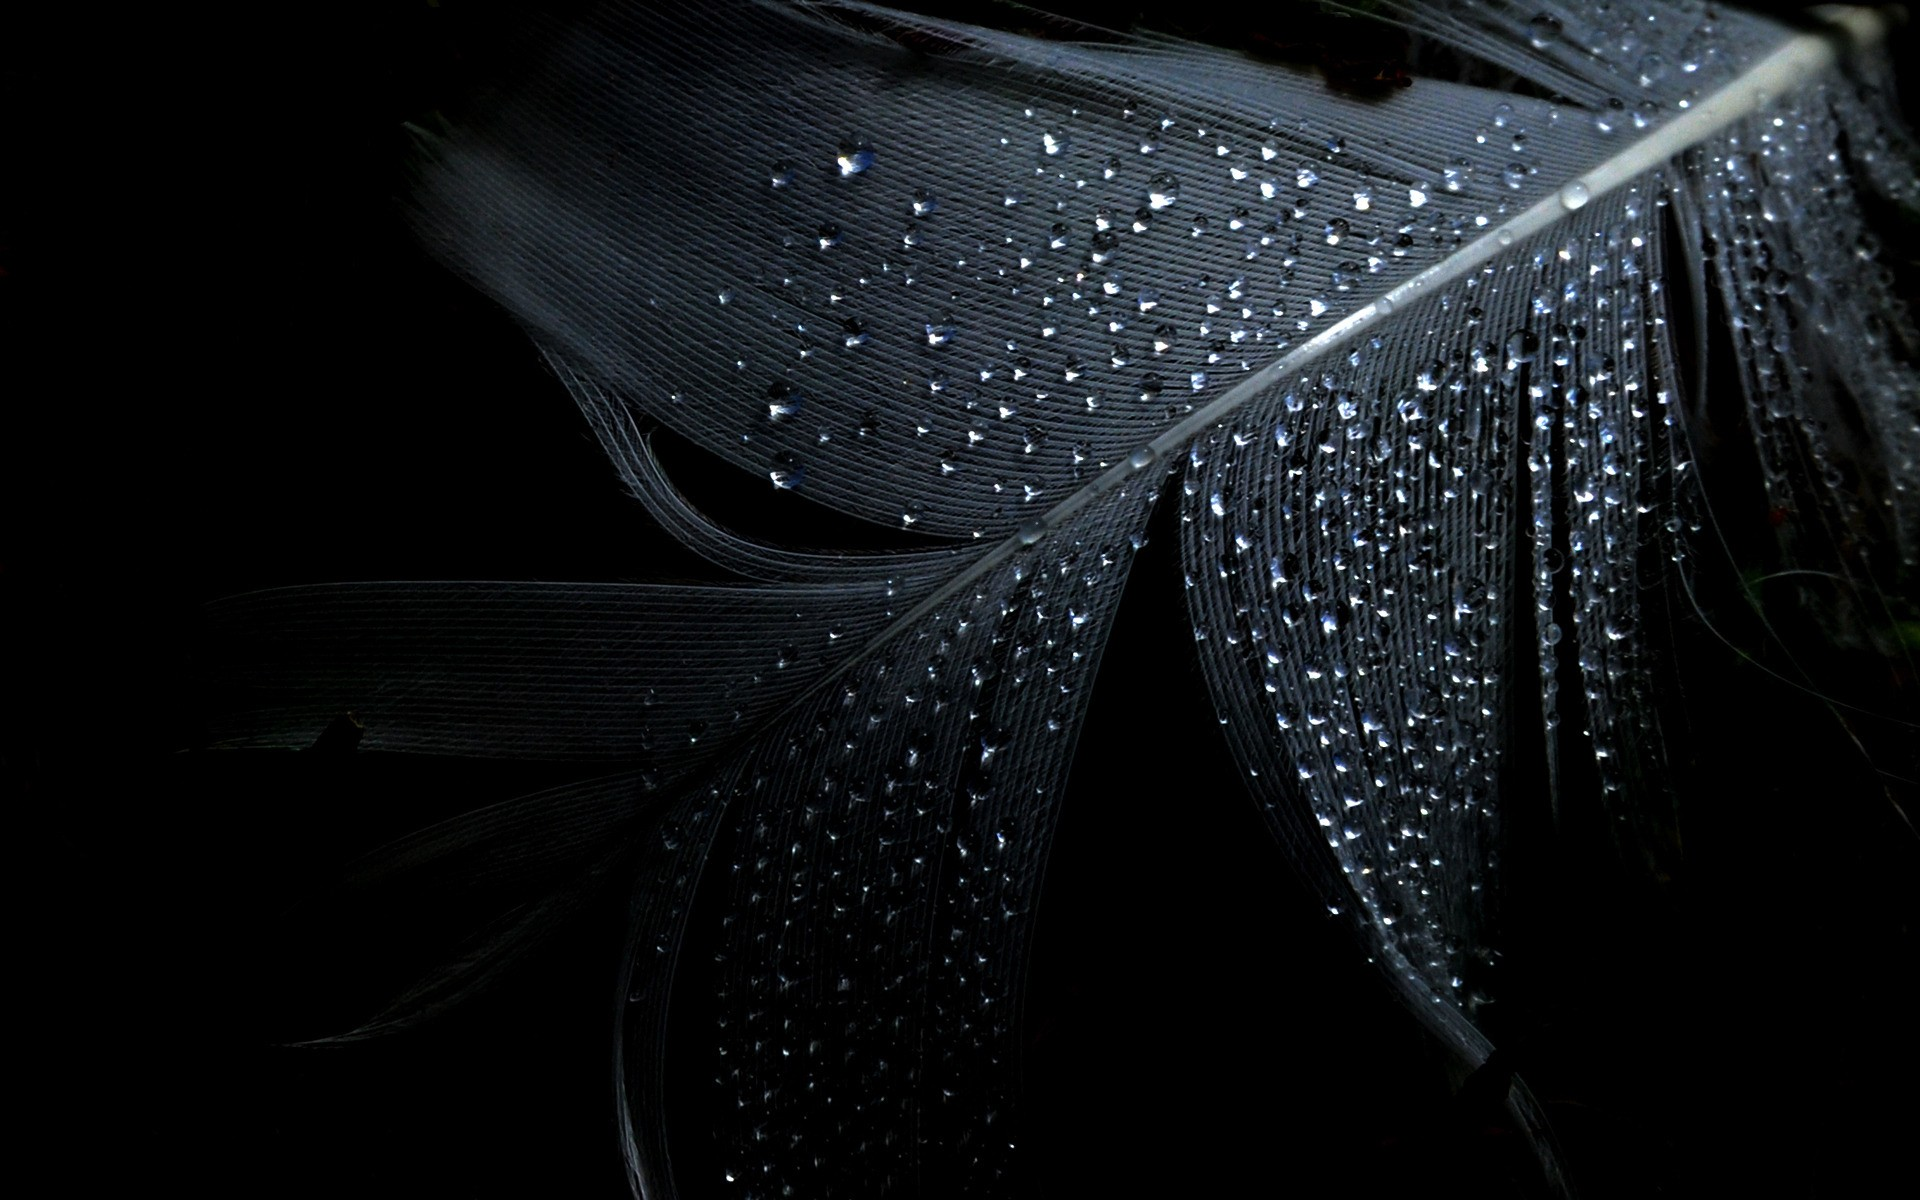 Black Dark Wallpaper 1920x1200 Black Dark Feathers 1920x1200